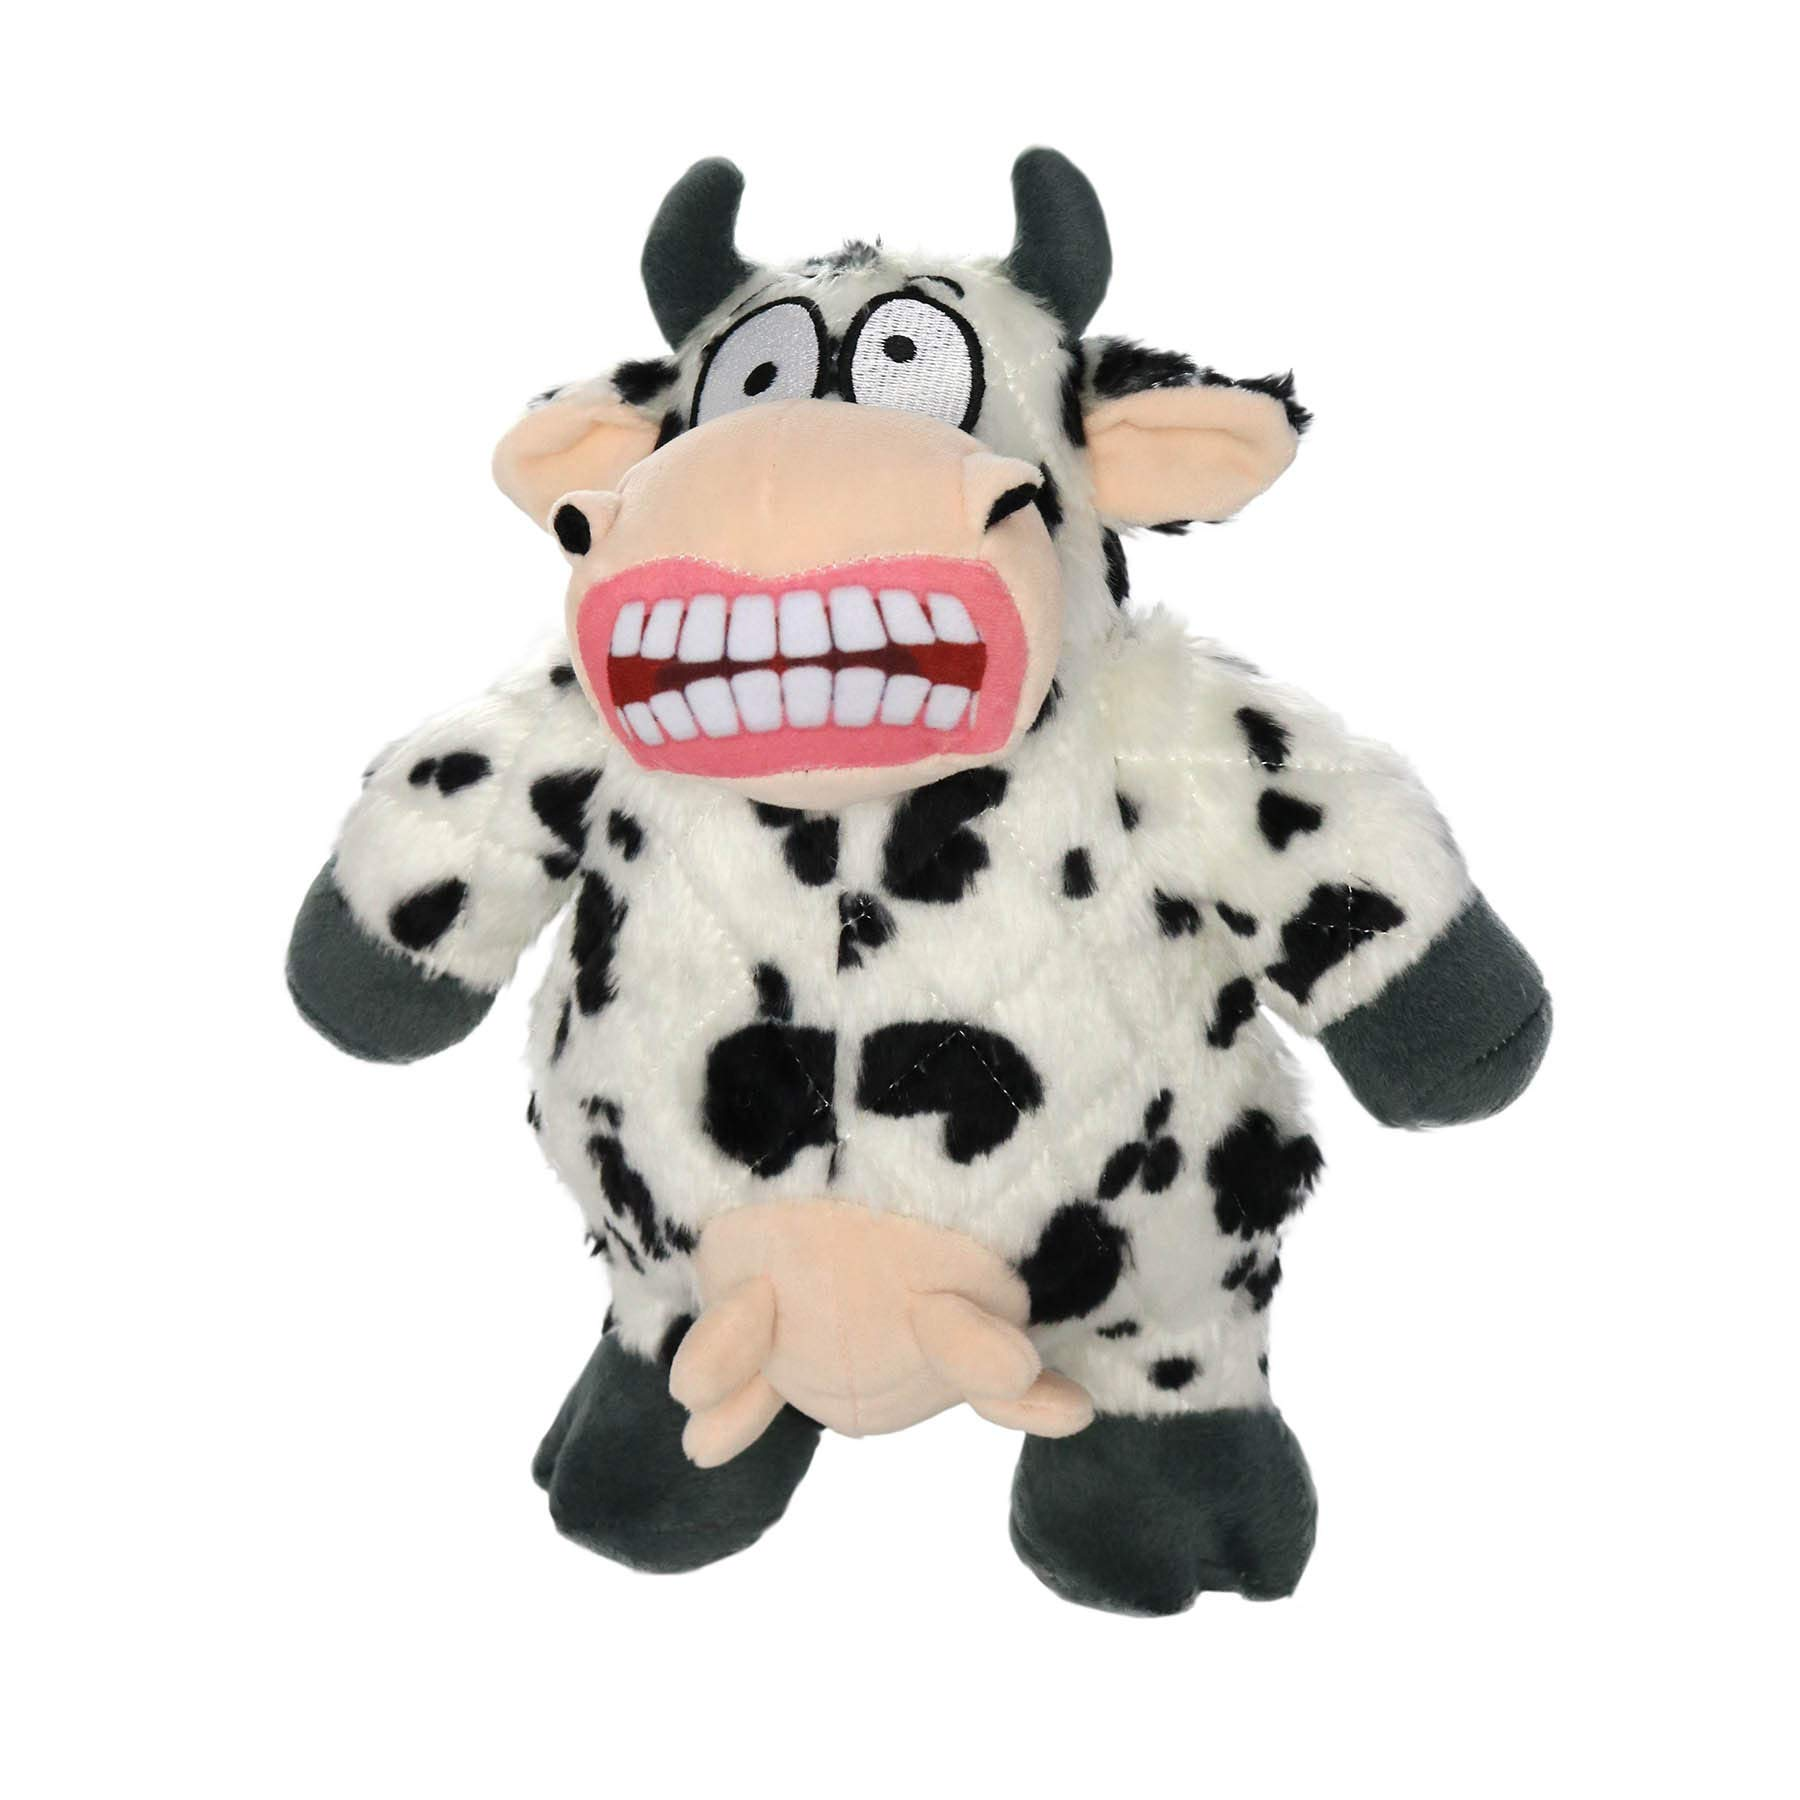 Mighty Jr Angry Animals Plush Dog Toy (Large, Cow) by Mighty